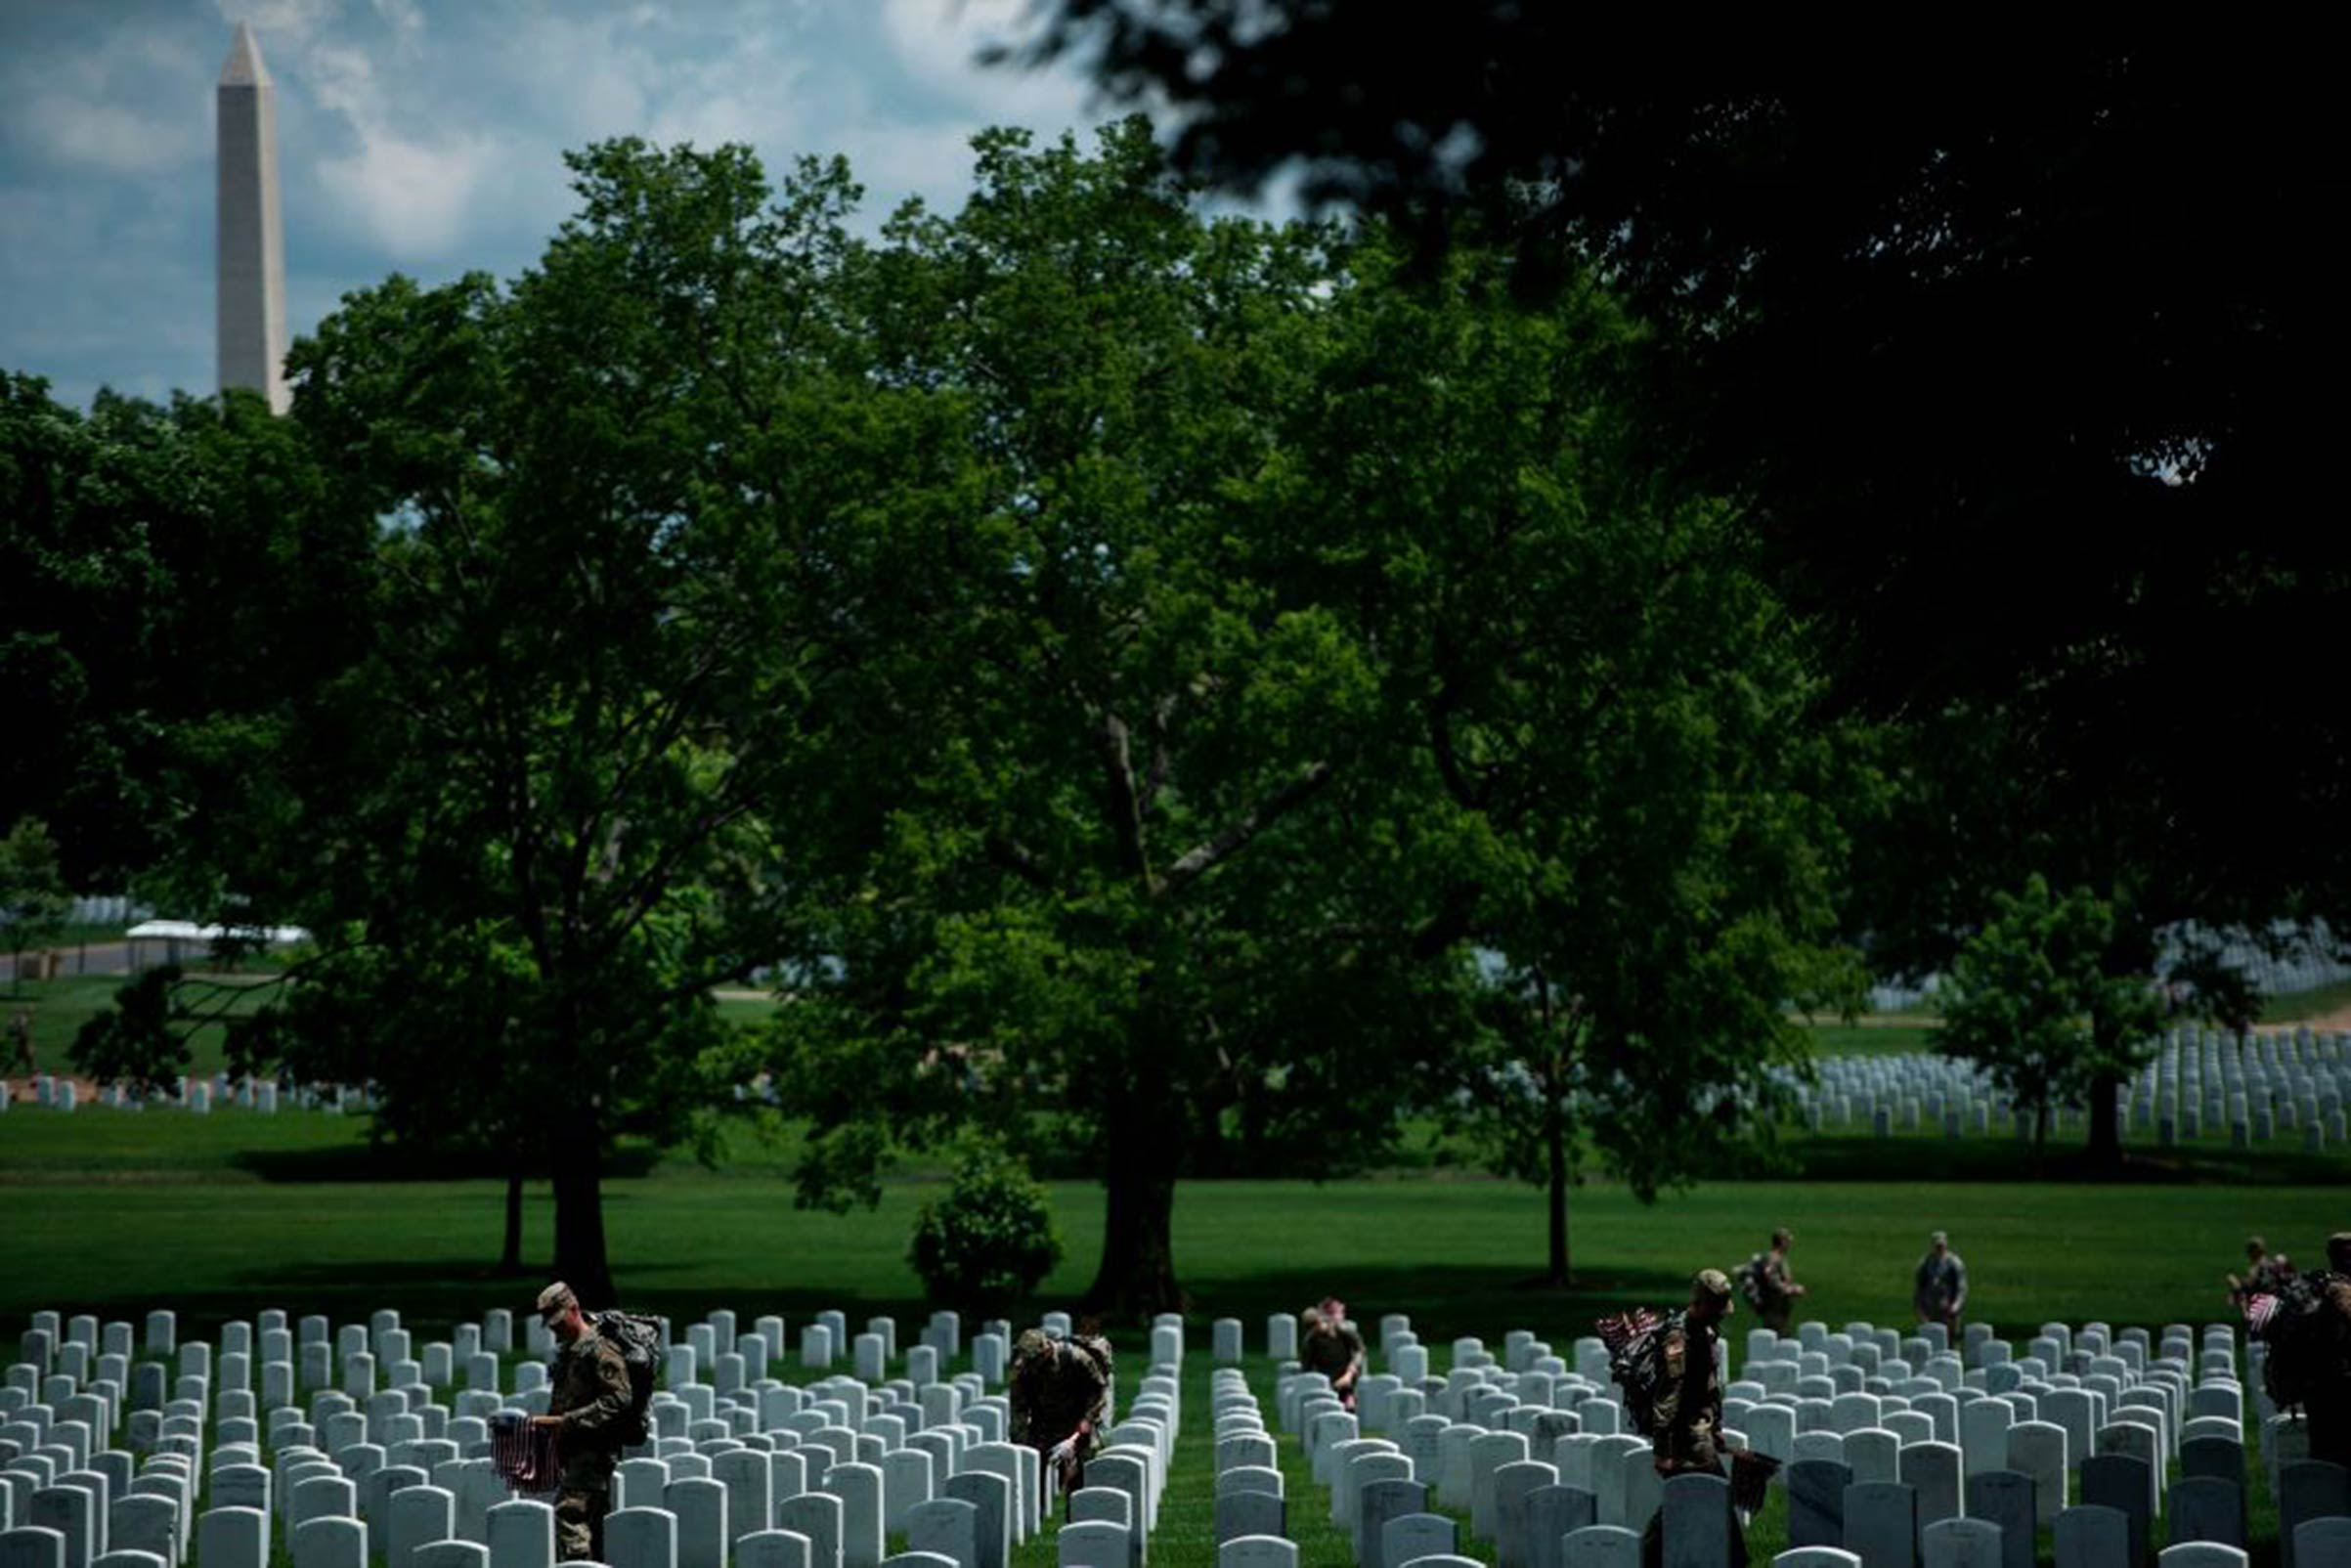 Soldiers in the Old Guard place flags at graves in Arlington National Cemetery during  Flags In  in preparation for Memorial Day May 25, 2017, in Arlington, Virginia.